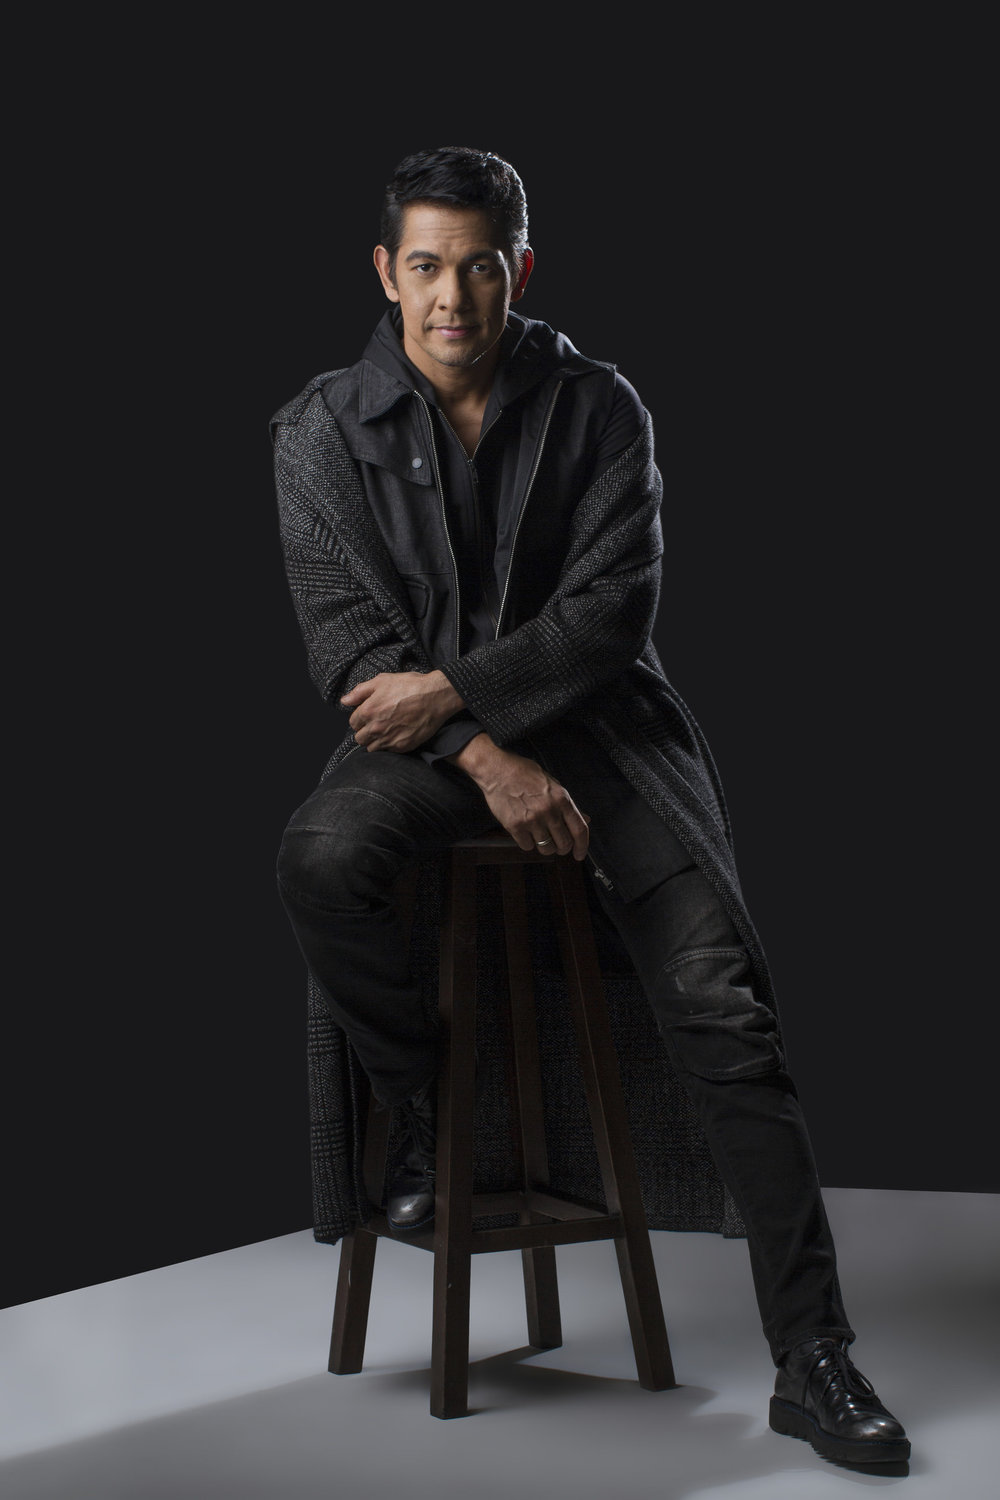 GARY VALENCIANO - Multi-awarded Singer | Recording Artist | Composer and Arranger | ChoreographerDancer | TV and Movie Actor | Celebrity Host | Top Commercial Endorser